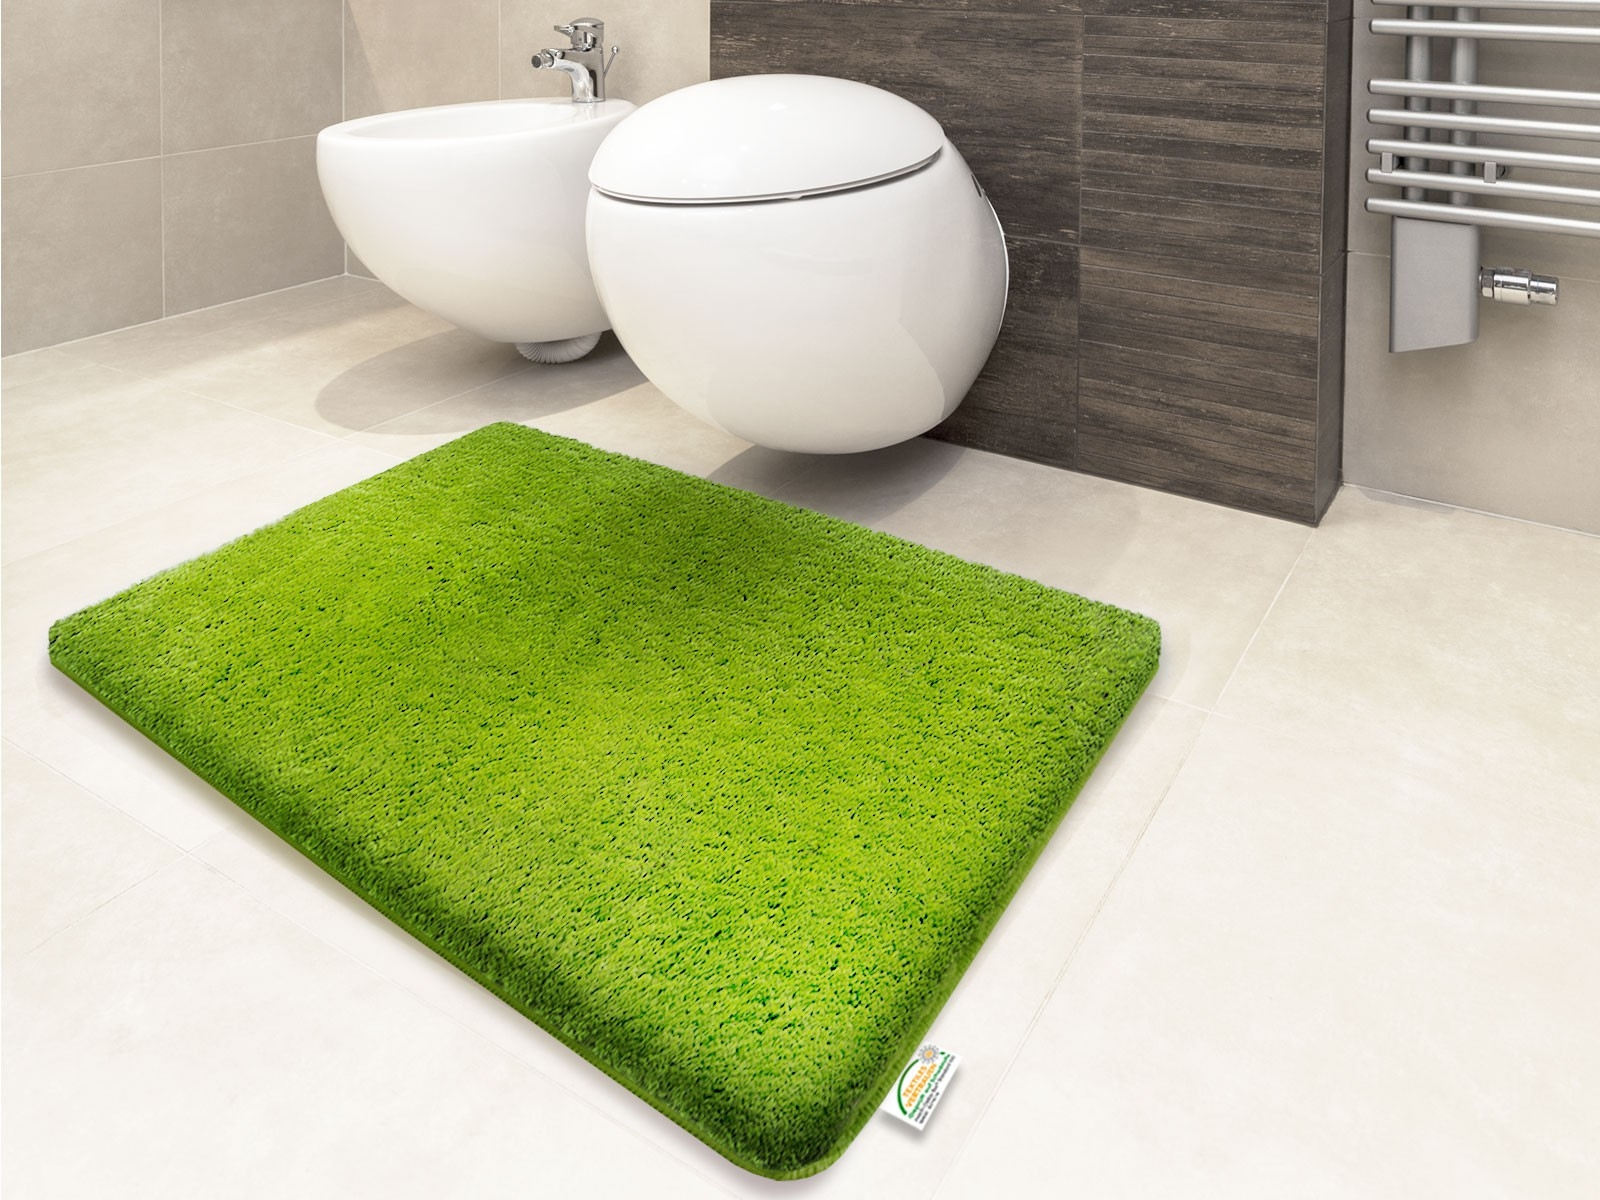 Bathtub Mat Grass